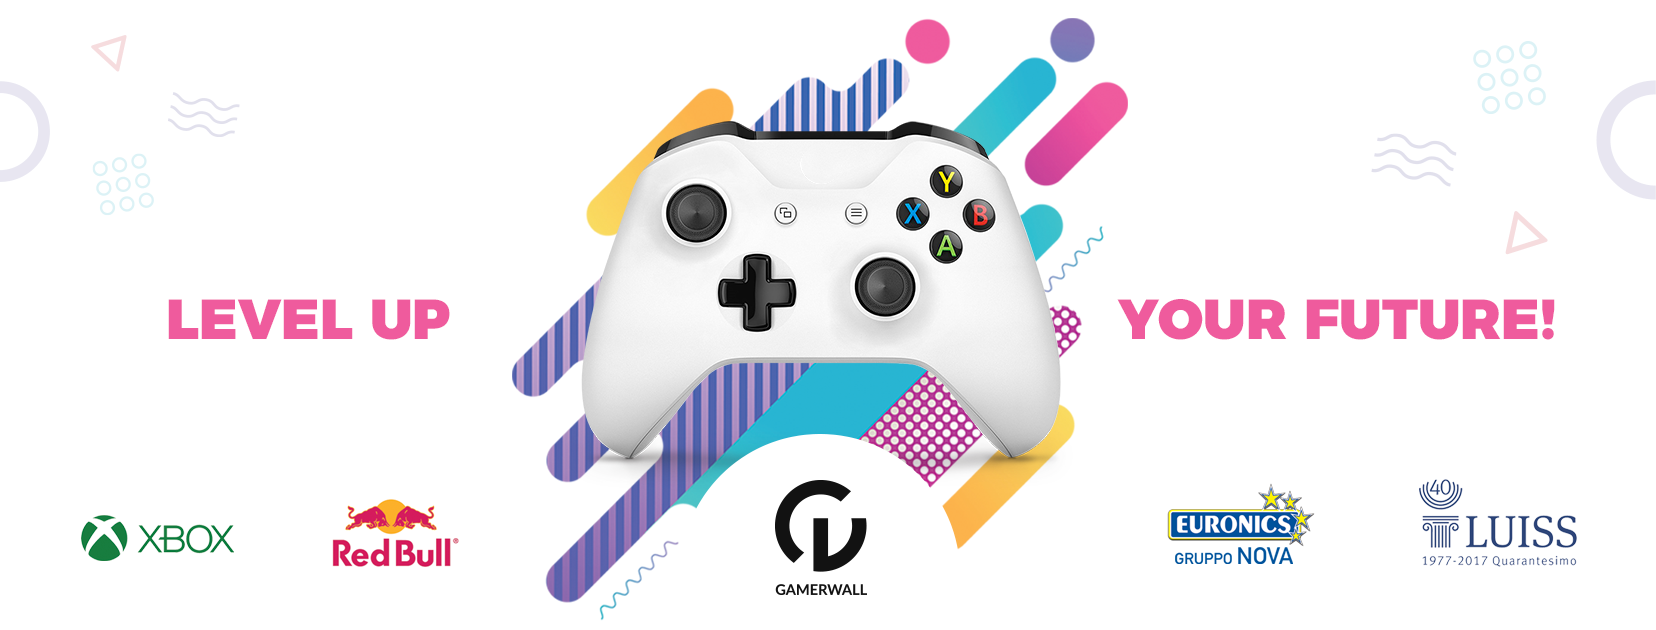 Microsoft supporta il progetto Gamerwall University League: gli eSport sbarcano all'università thumbnail